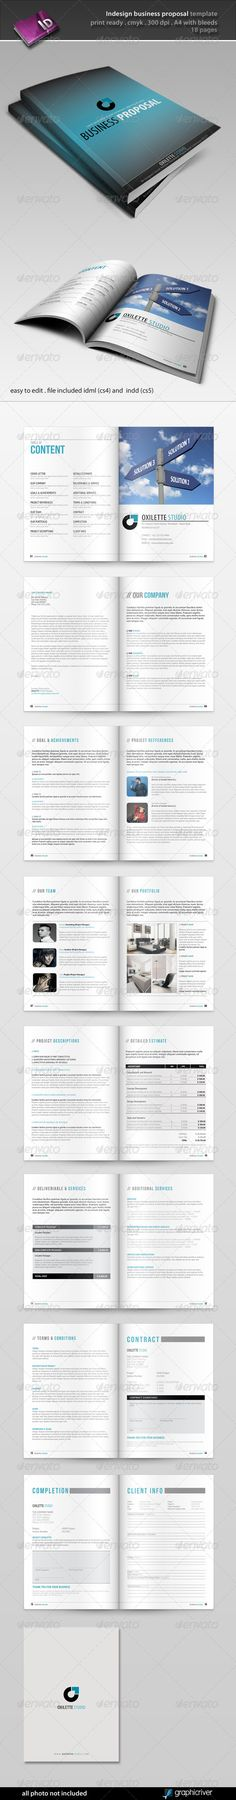 Pin by Karla Morloy on Templates Pinterest Proposals, Proposal - download business proposal template